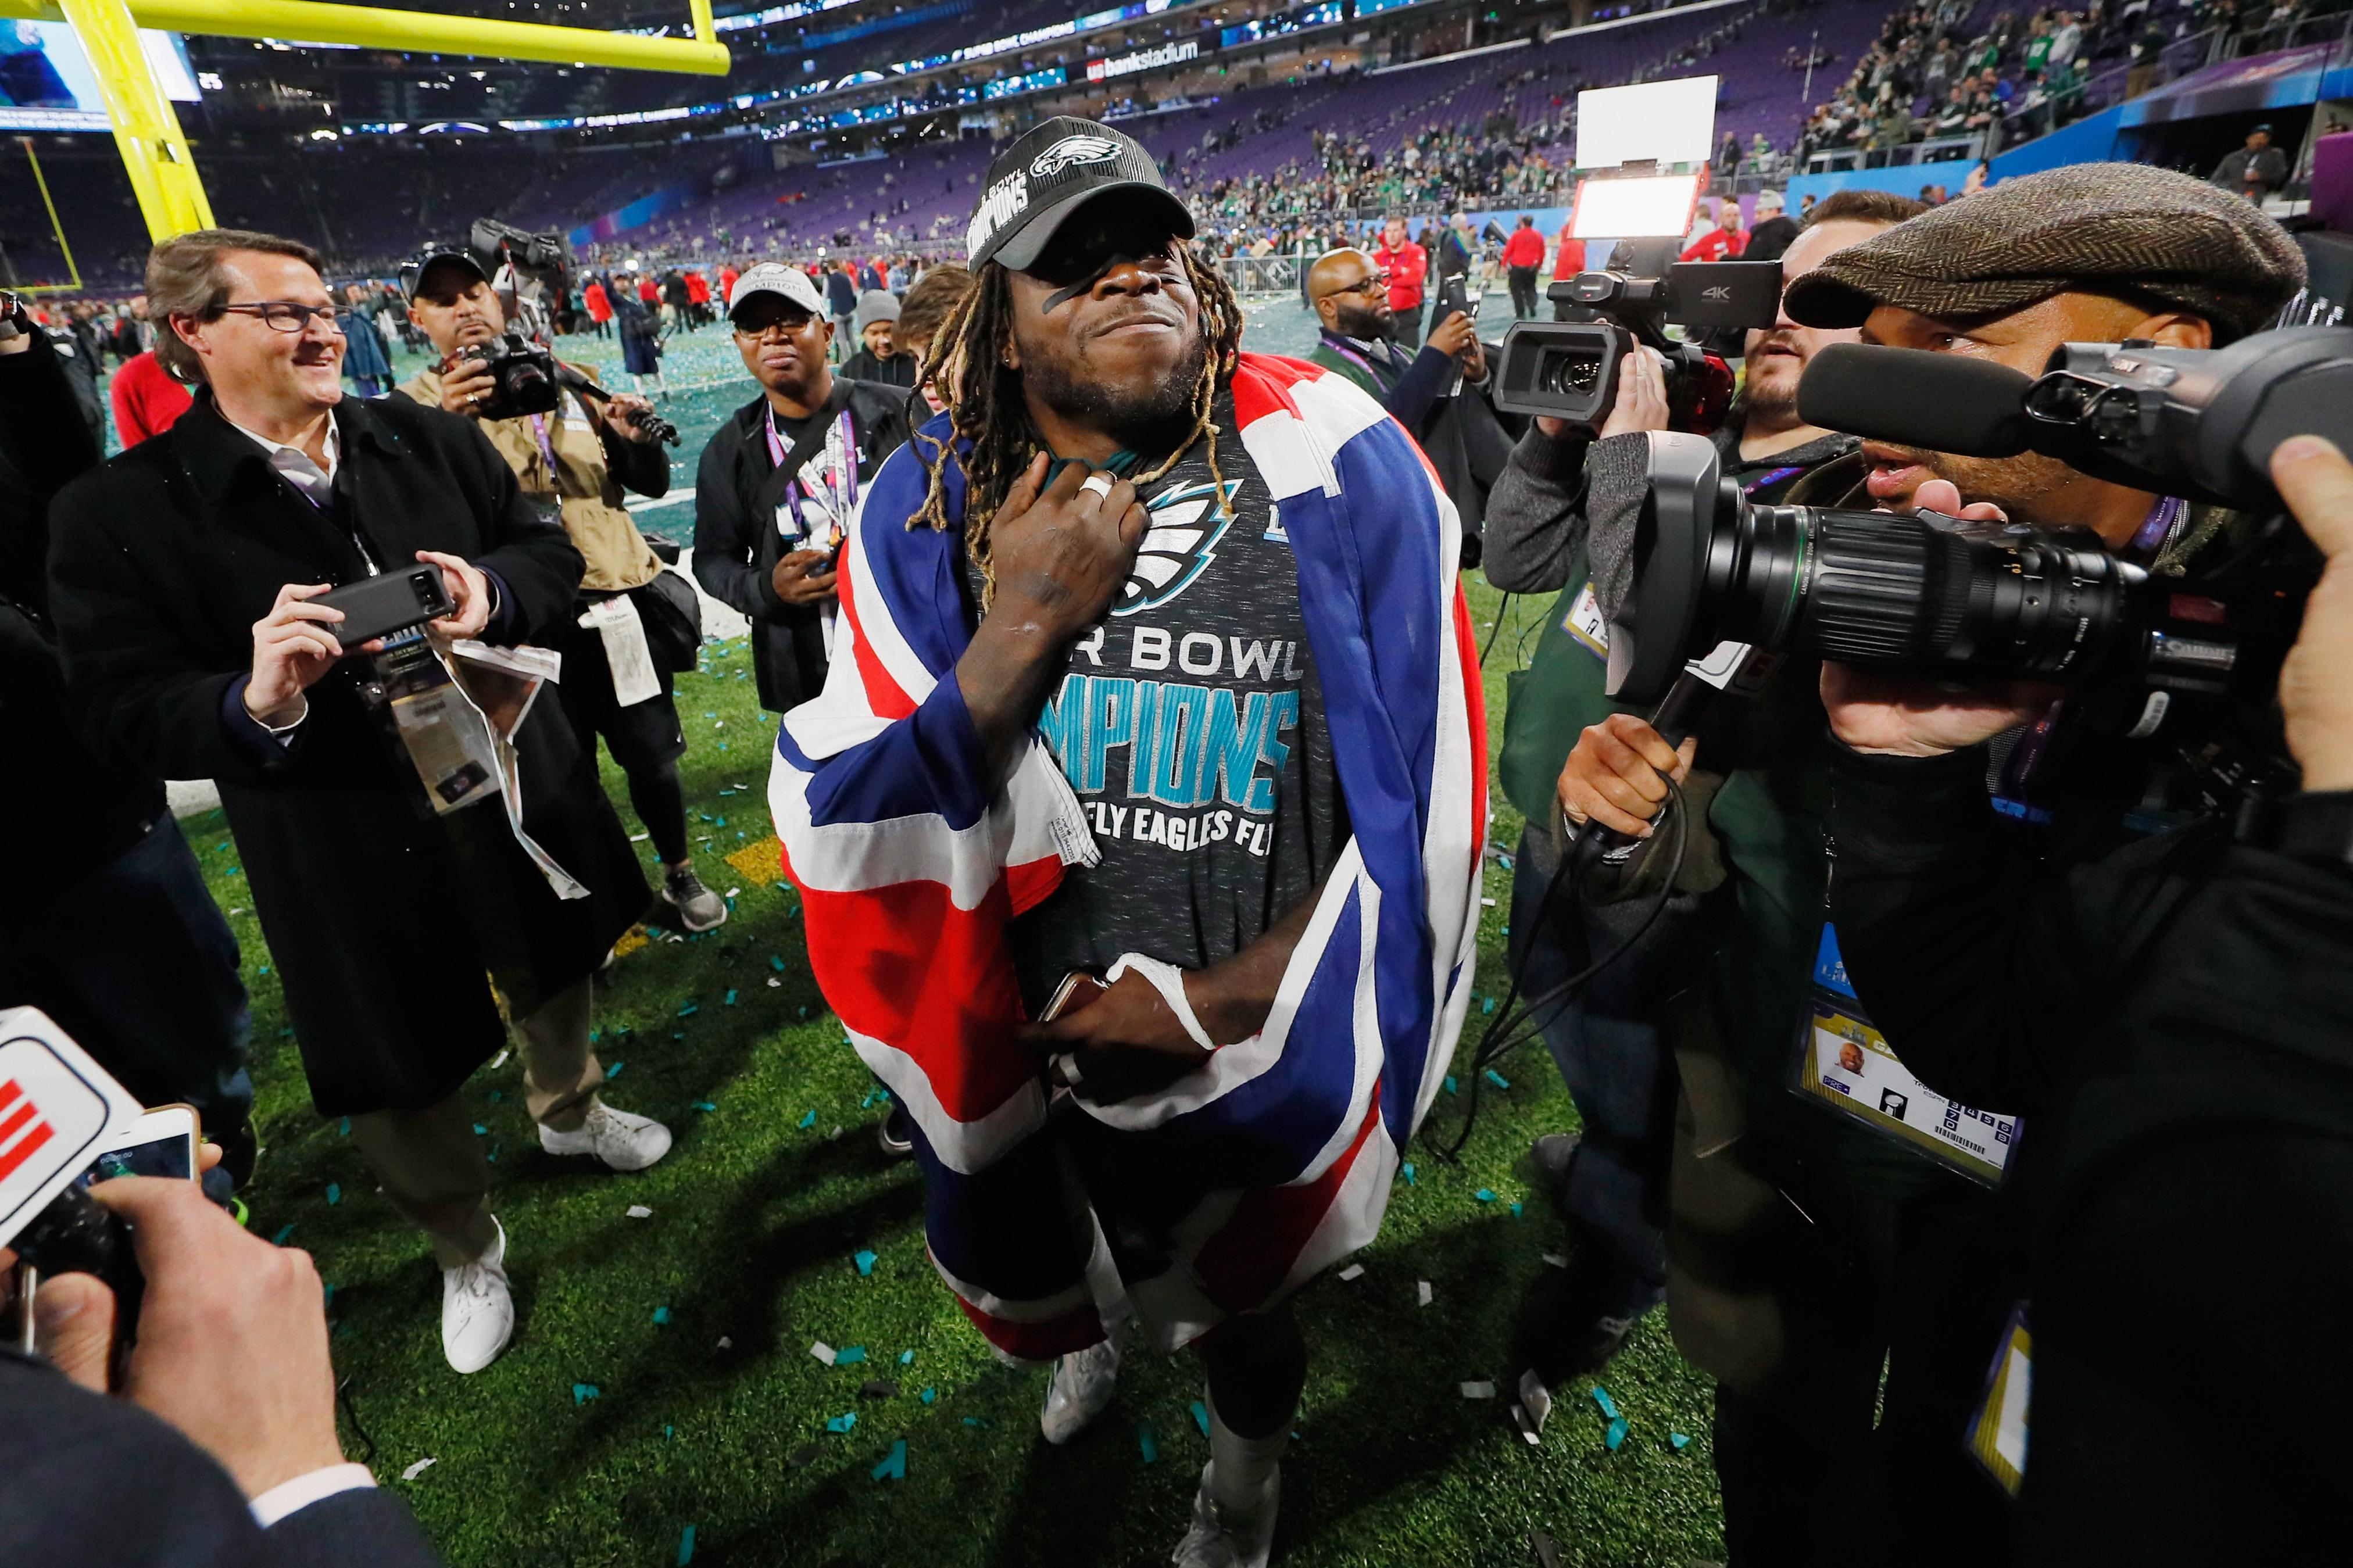 Ajayi celebrates the Philadelphia Eagles' Super Bowl win with a Union Jack over his shoulders